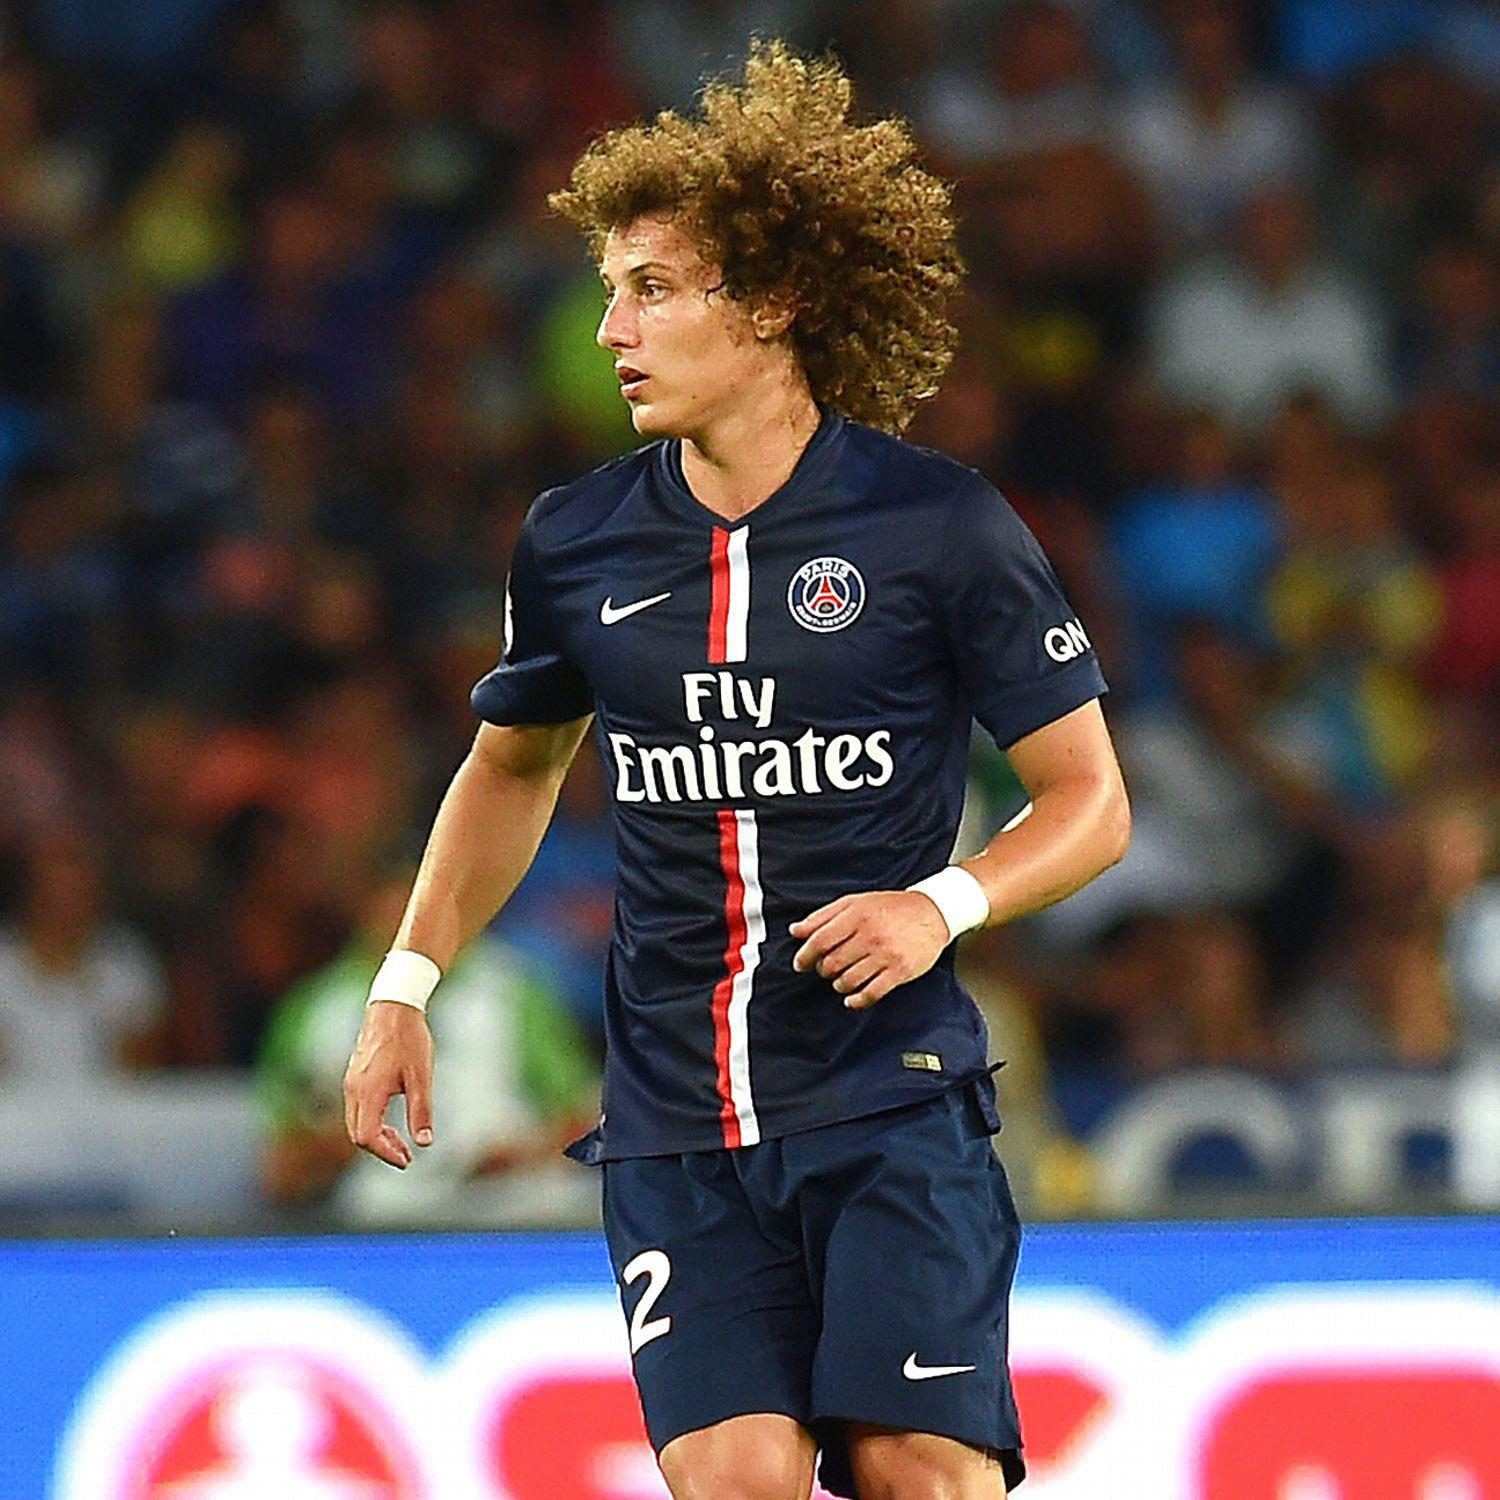 Photos Chelsea Vs Paris Saint Germain: Chelsea's David Luiz Returns To Paris Saint-Germain For A